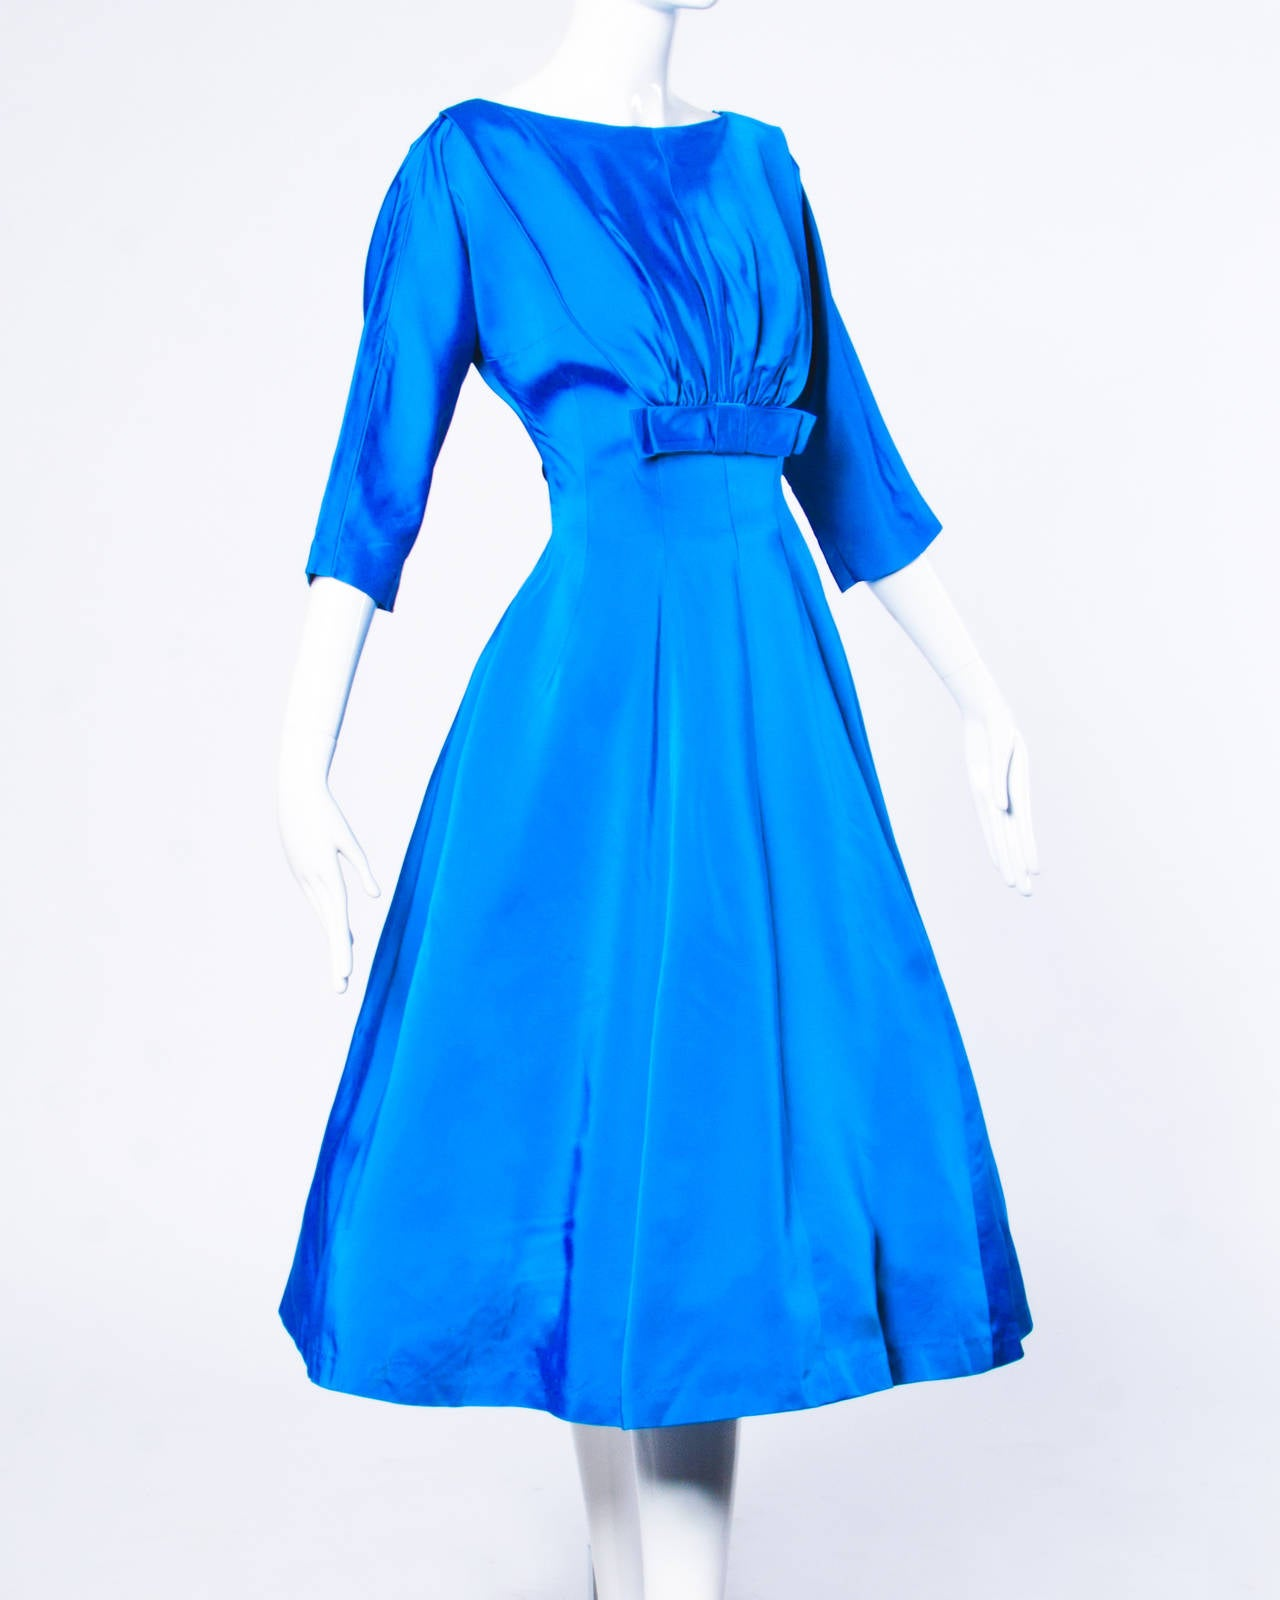 Vintage 1960s 60s Blue Satin Full Sweep Party Dress with Bow 2